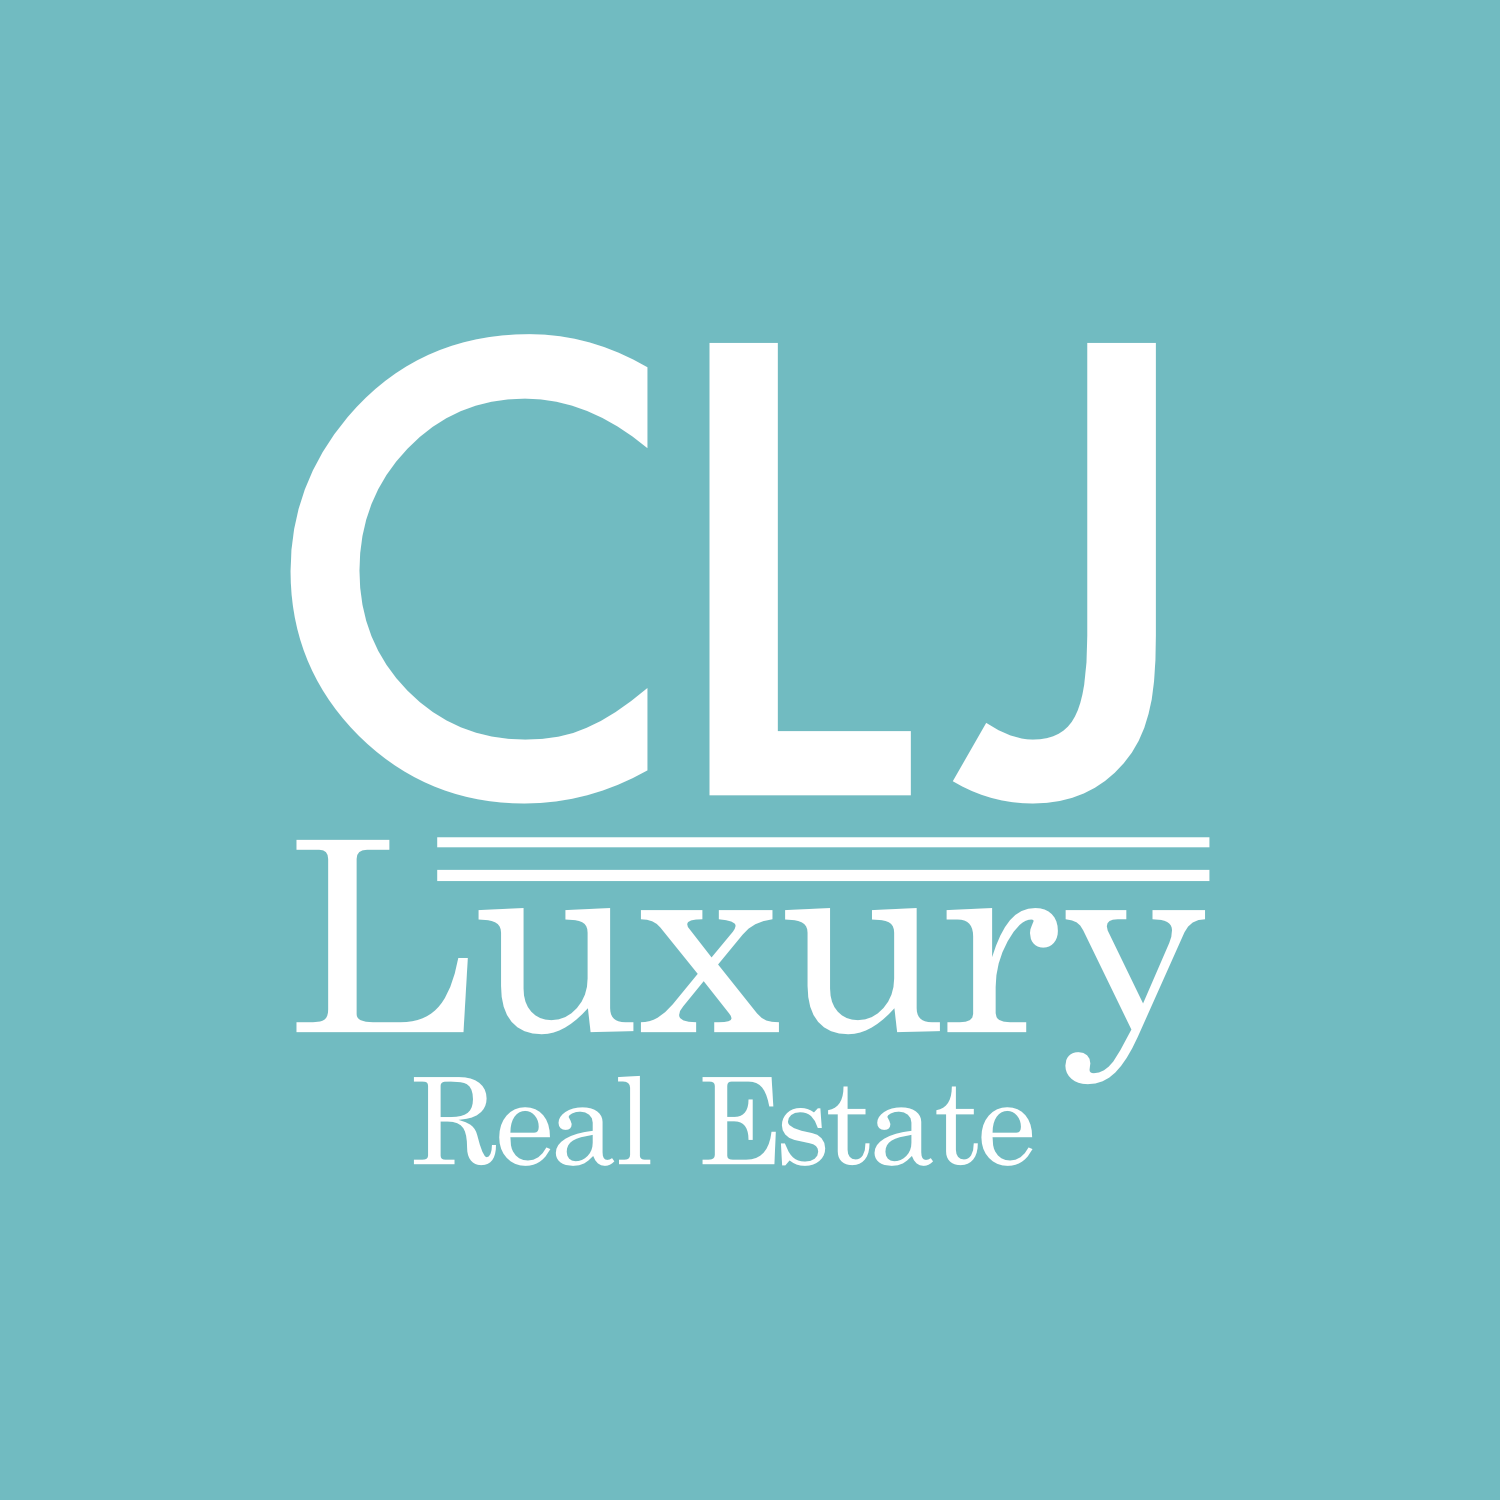 Luxury homes for sale in Hoover al